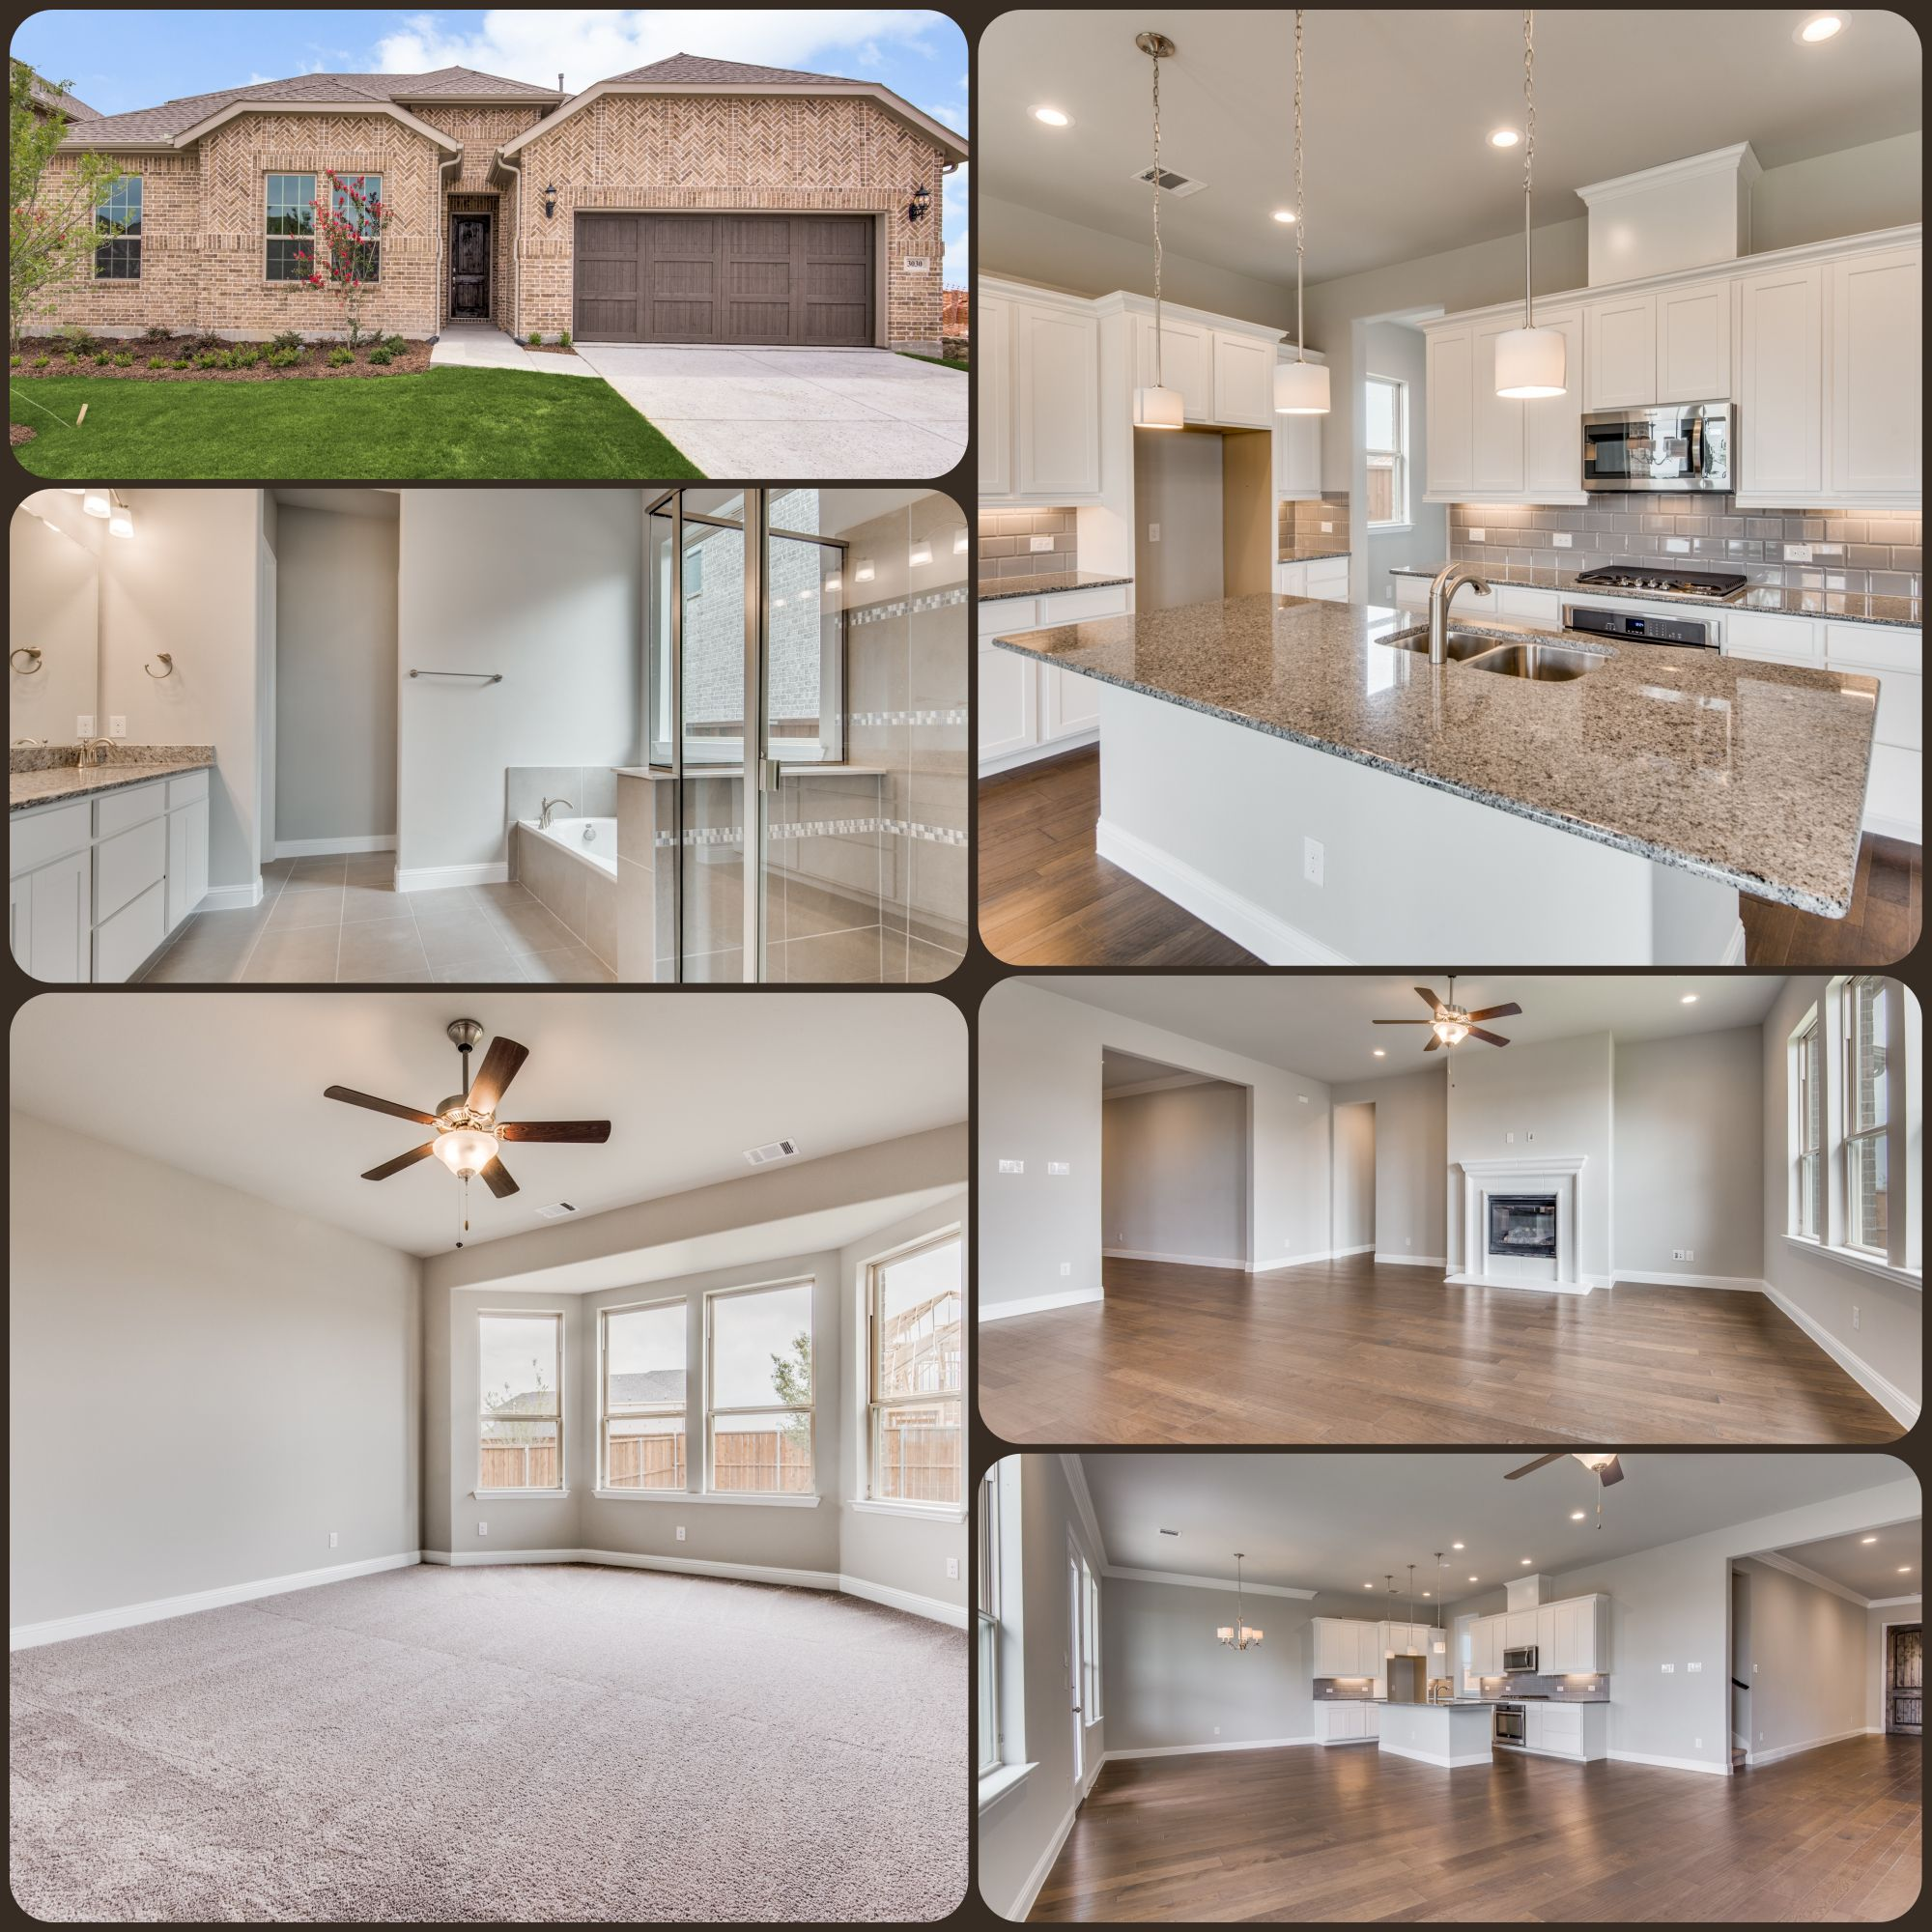 homes for sale in bluewood celina tx